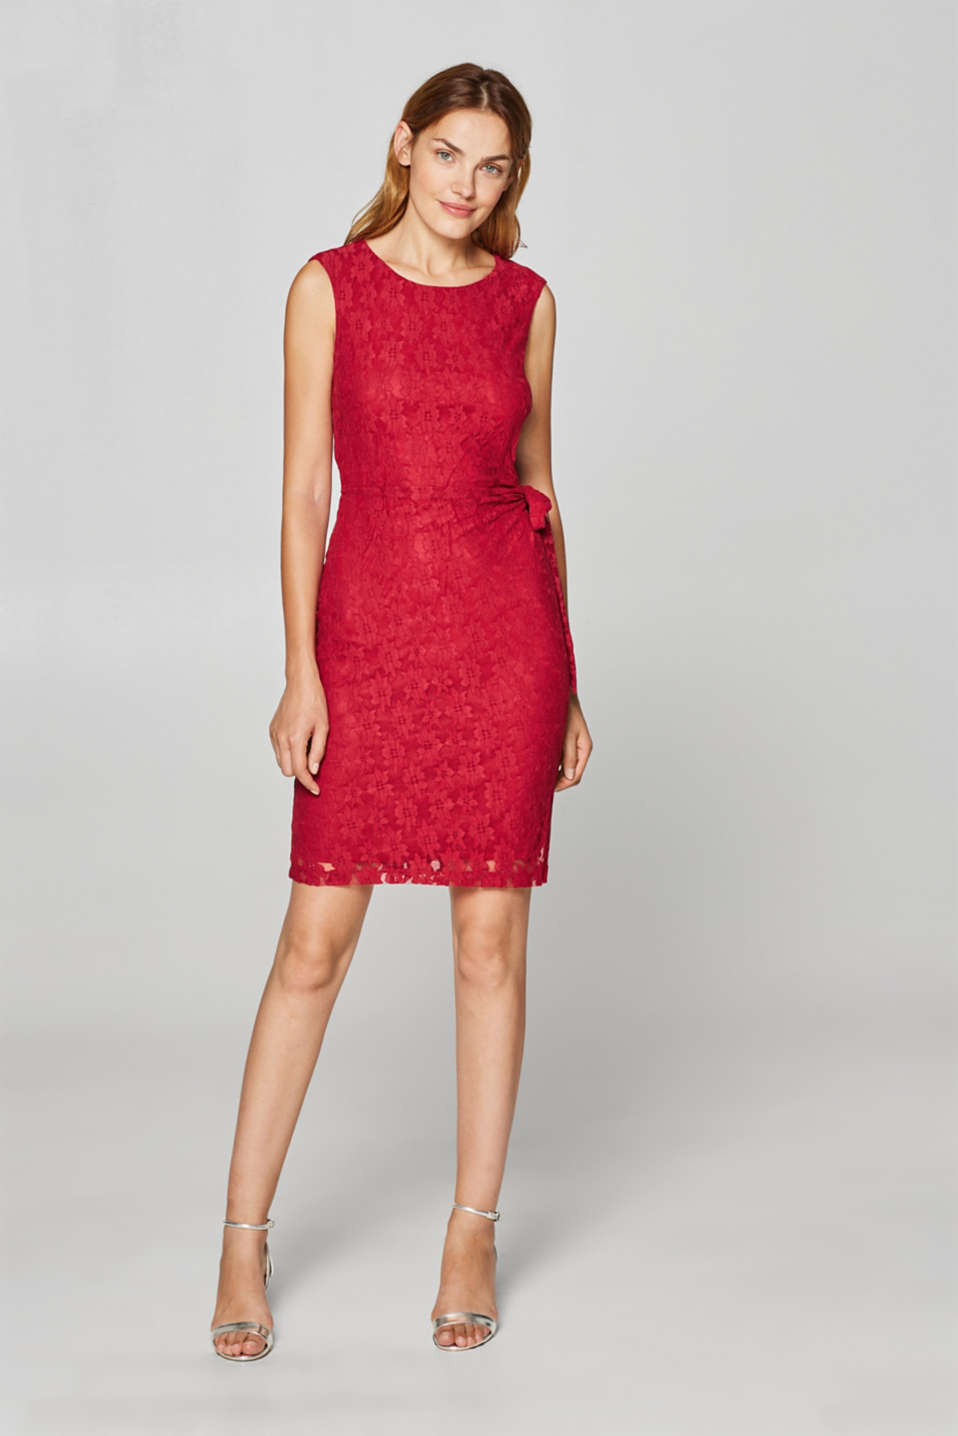 Esprit - Lace dress with back strap